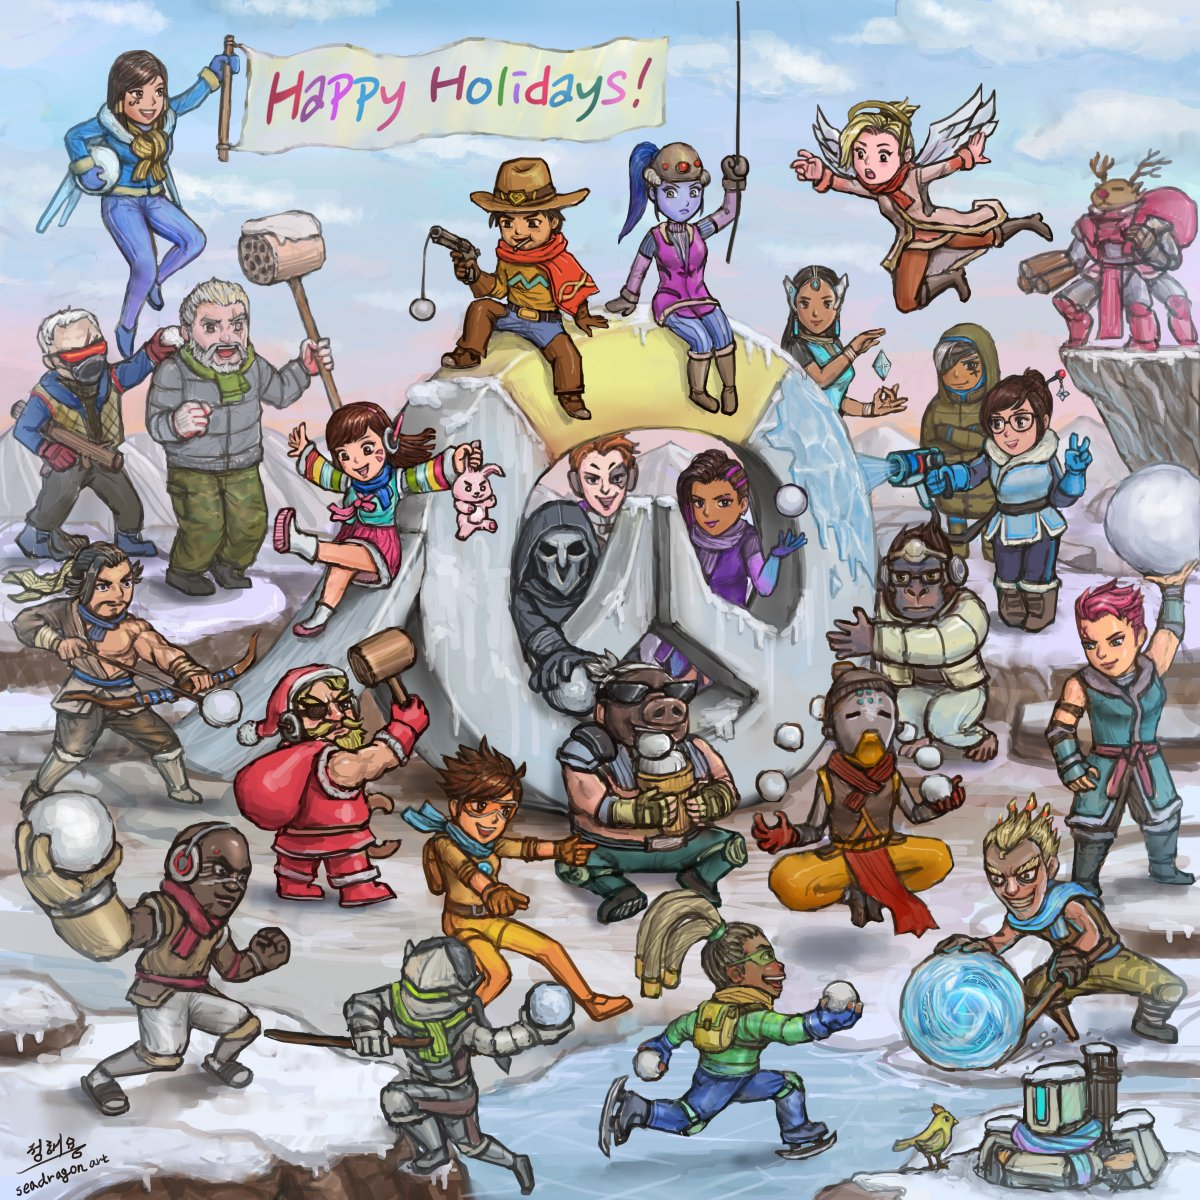 Happy Holidays from all of us on the Overwatch team.🎄❤️